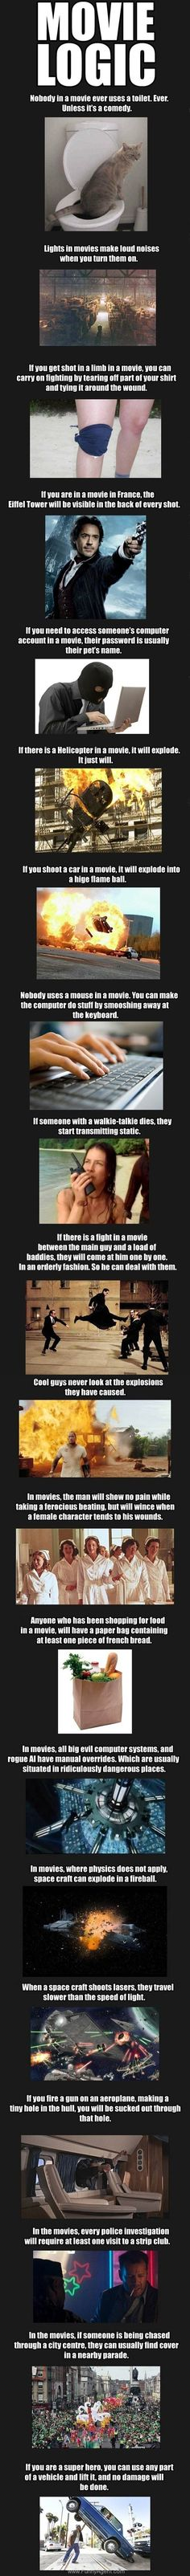 Funny Movies Logic